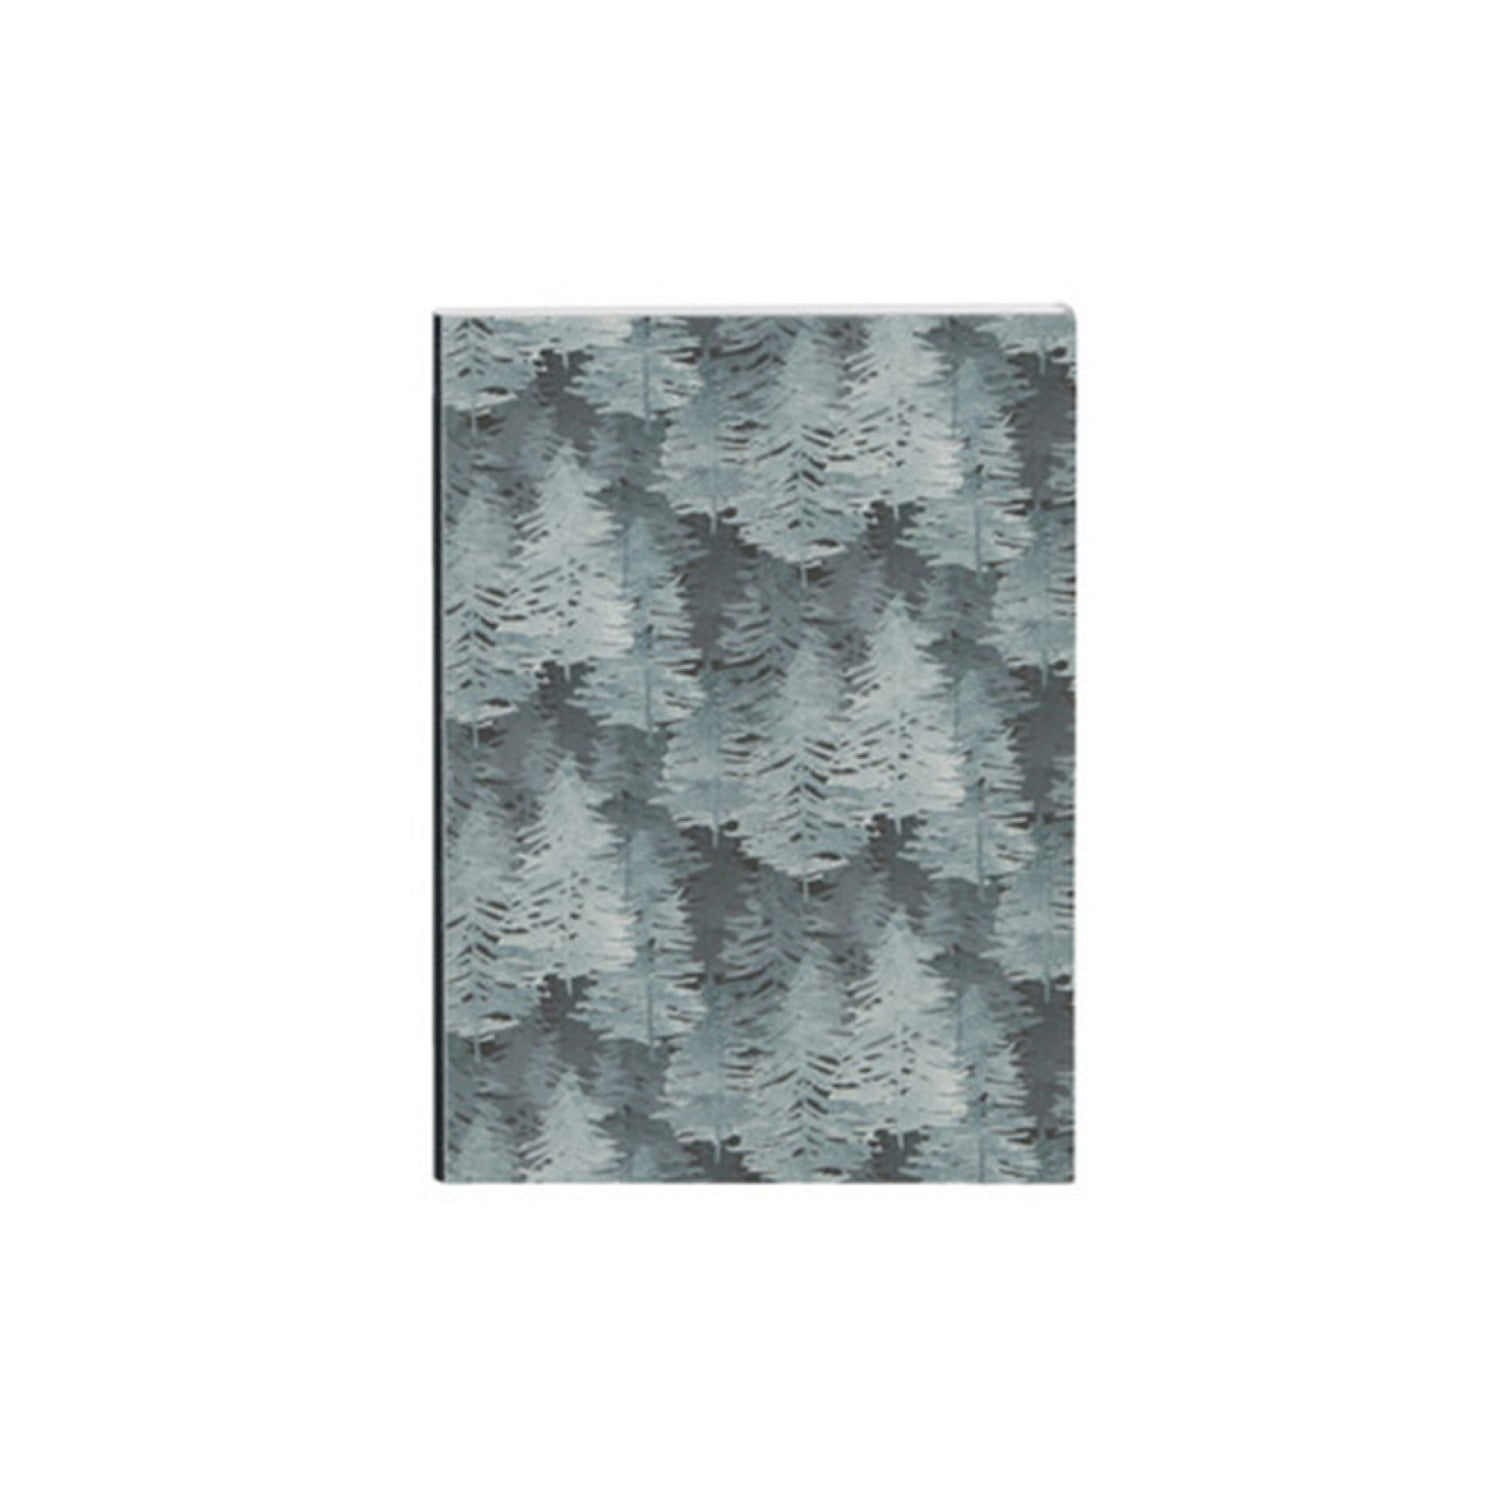 Clairefontaine La Vie en Vosges Collection Notebook Clothbound A5 Ruled - Forest